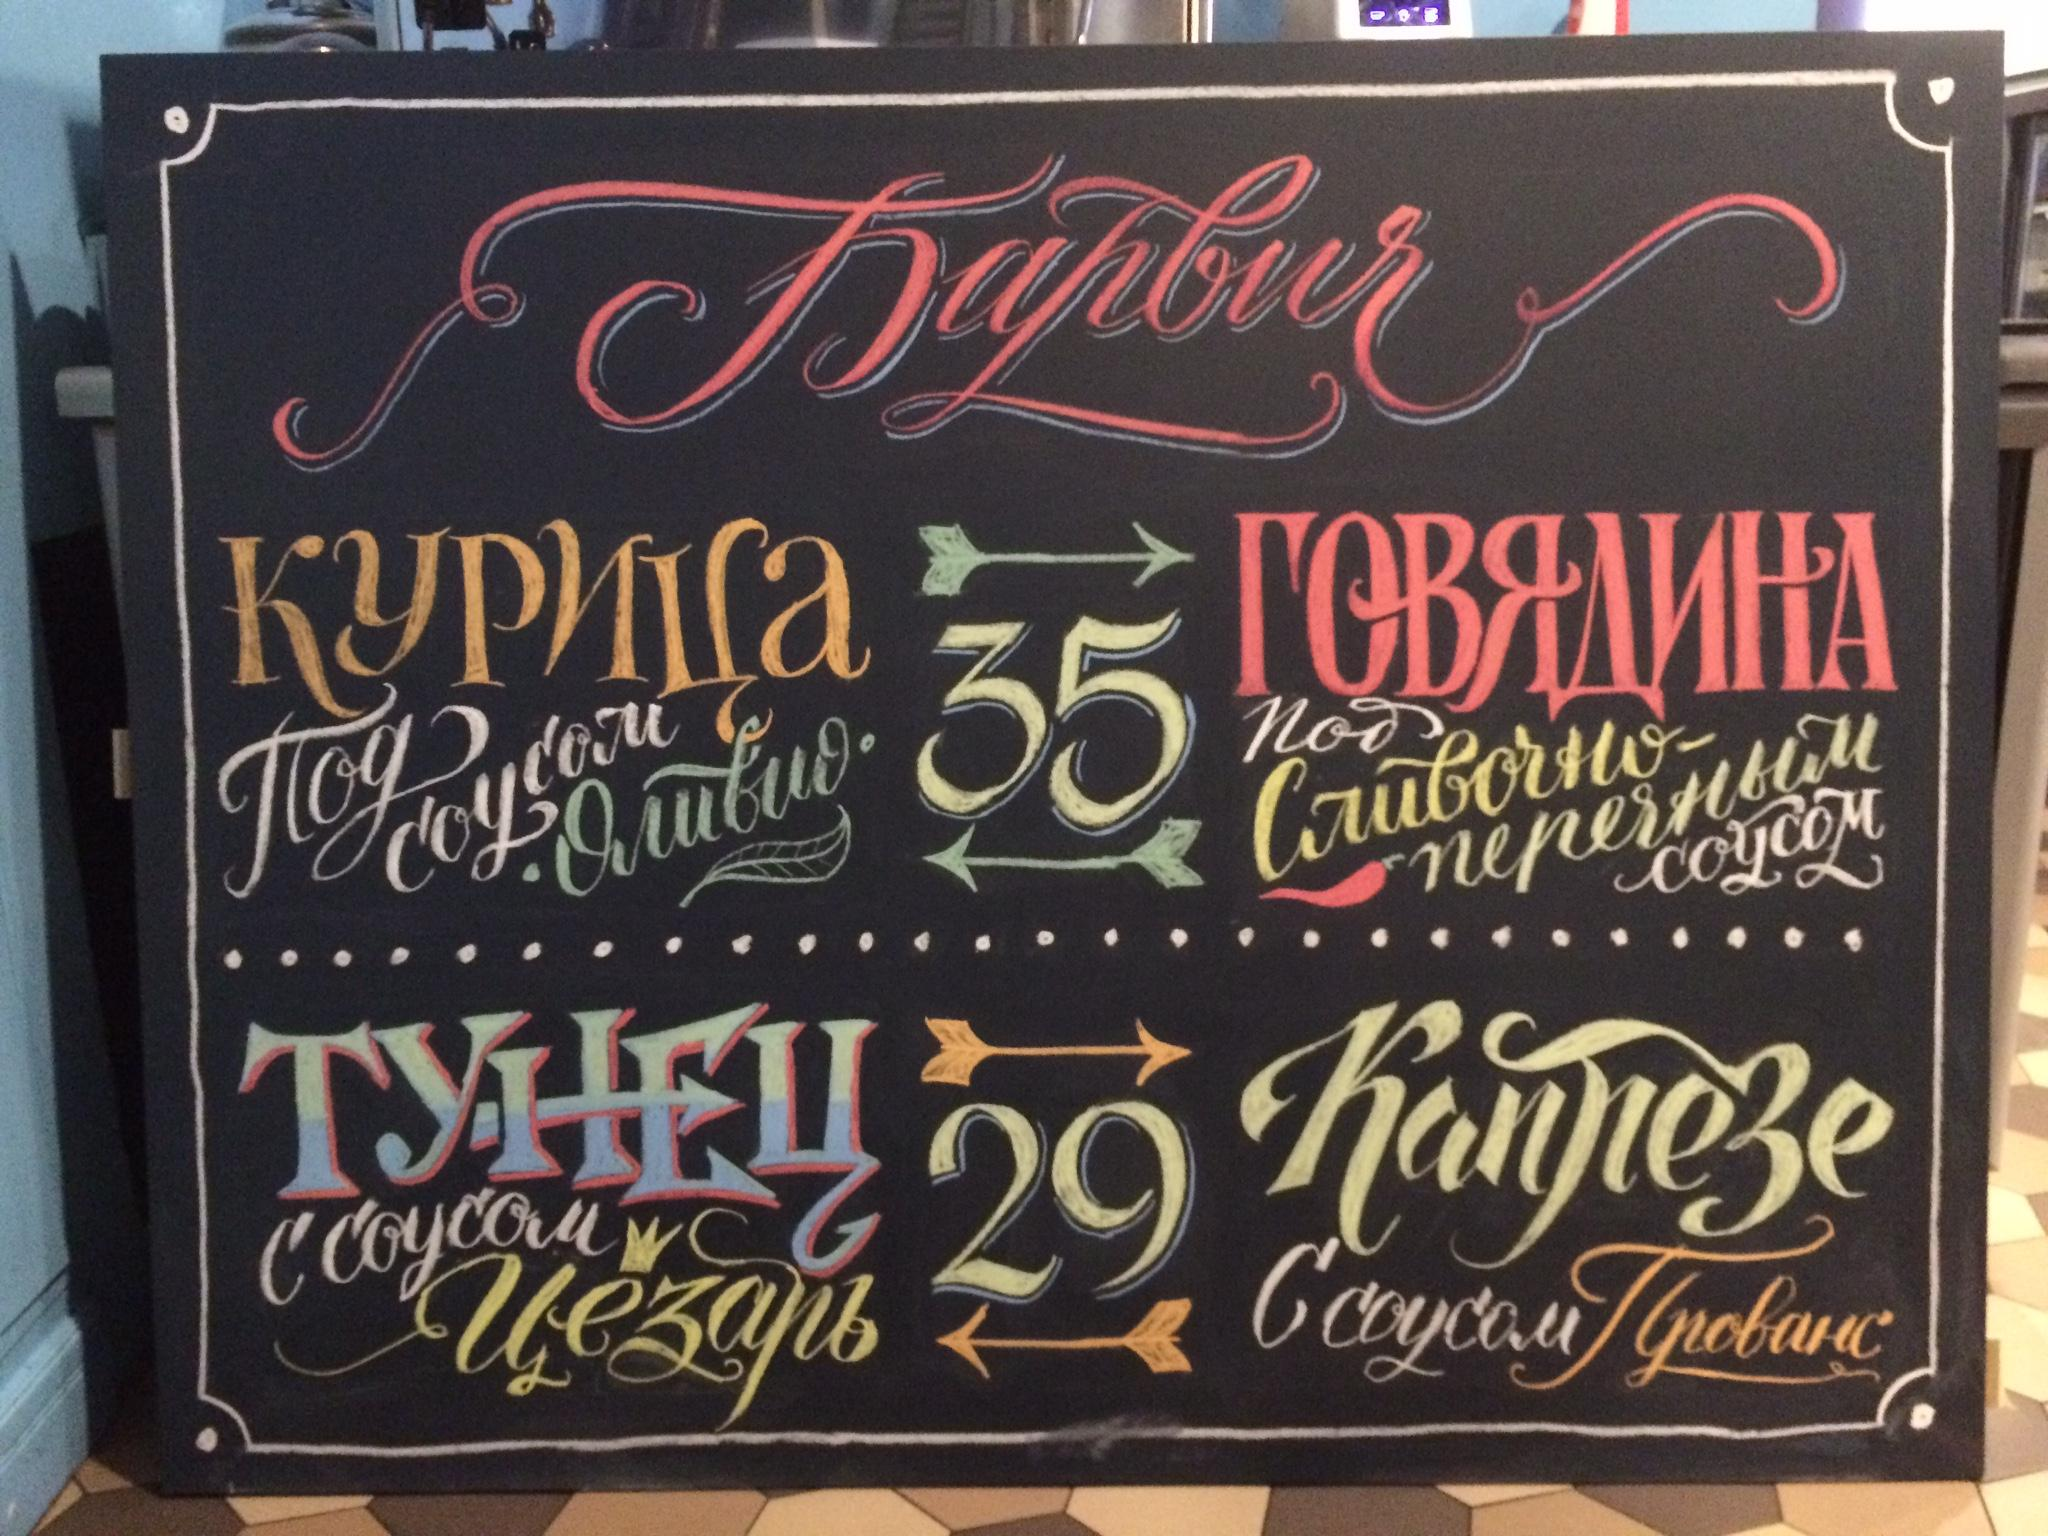 """Chalkboard menu for the """"9 bar"""" cafe, located in Minsk, Belarus - image 2 - student project"""